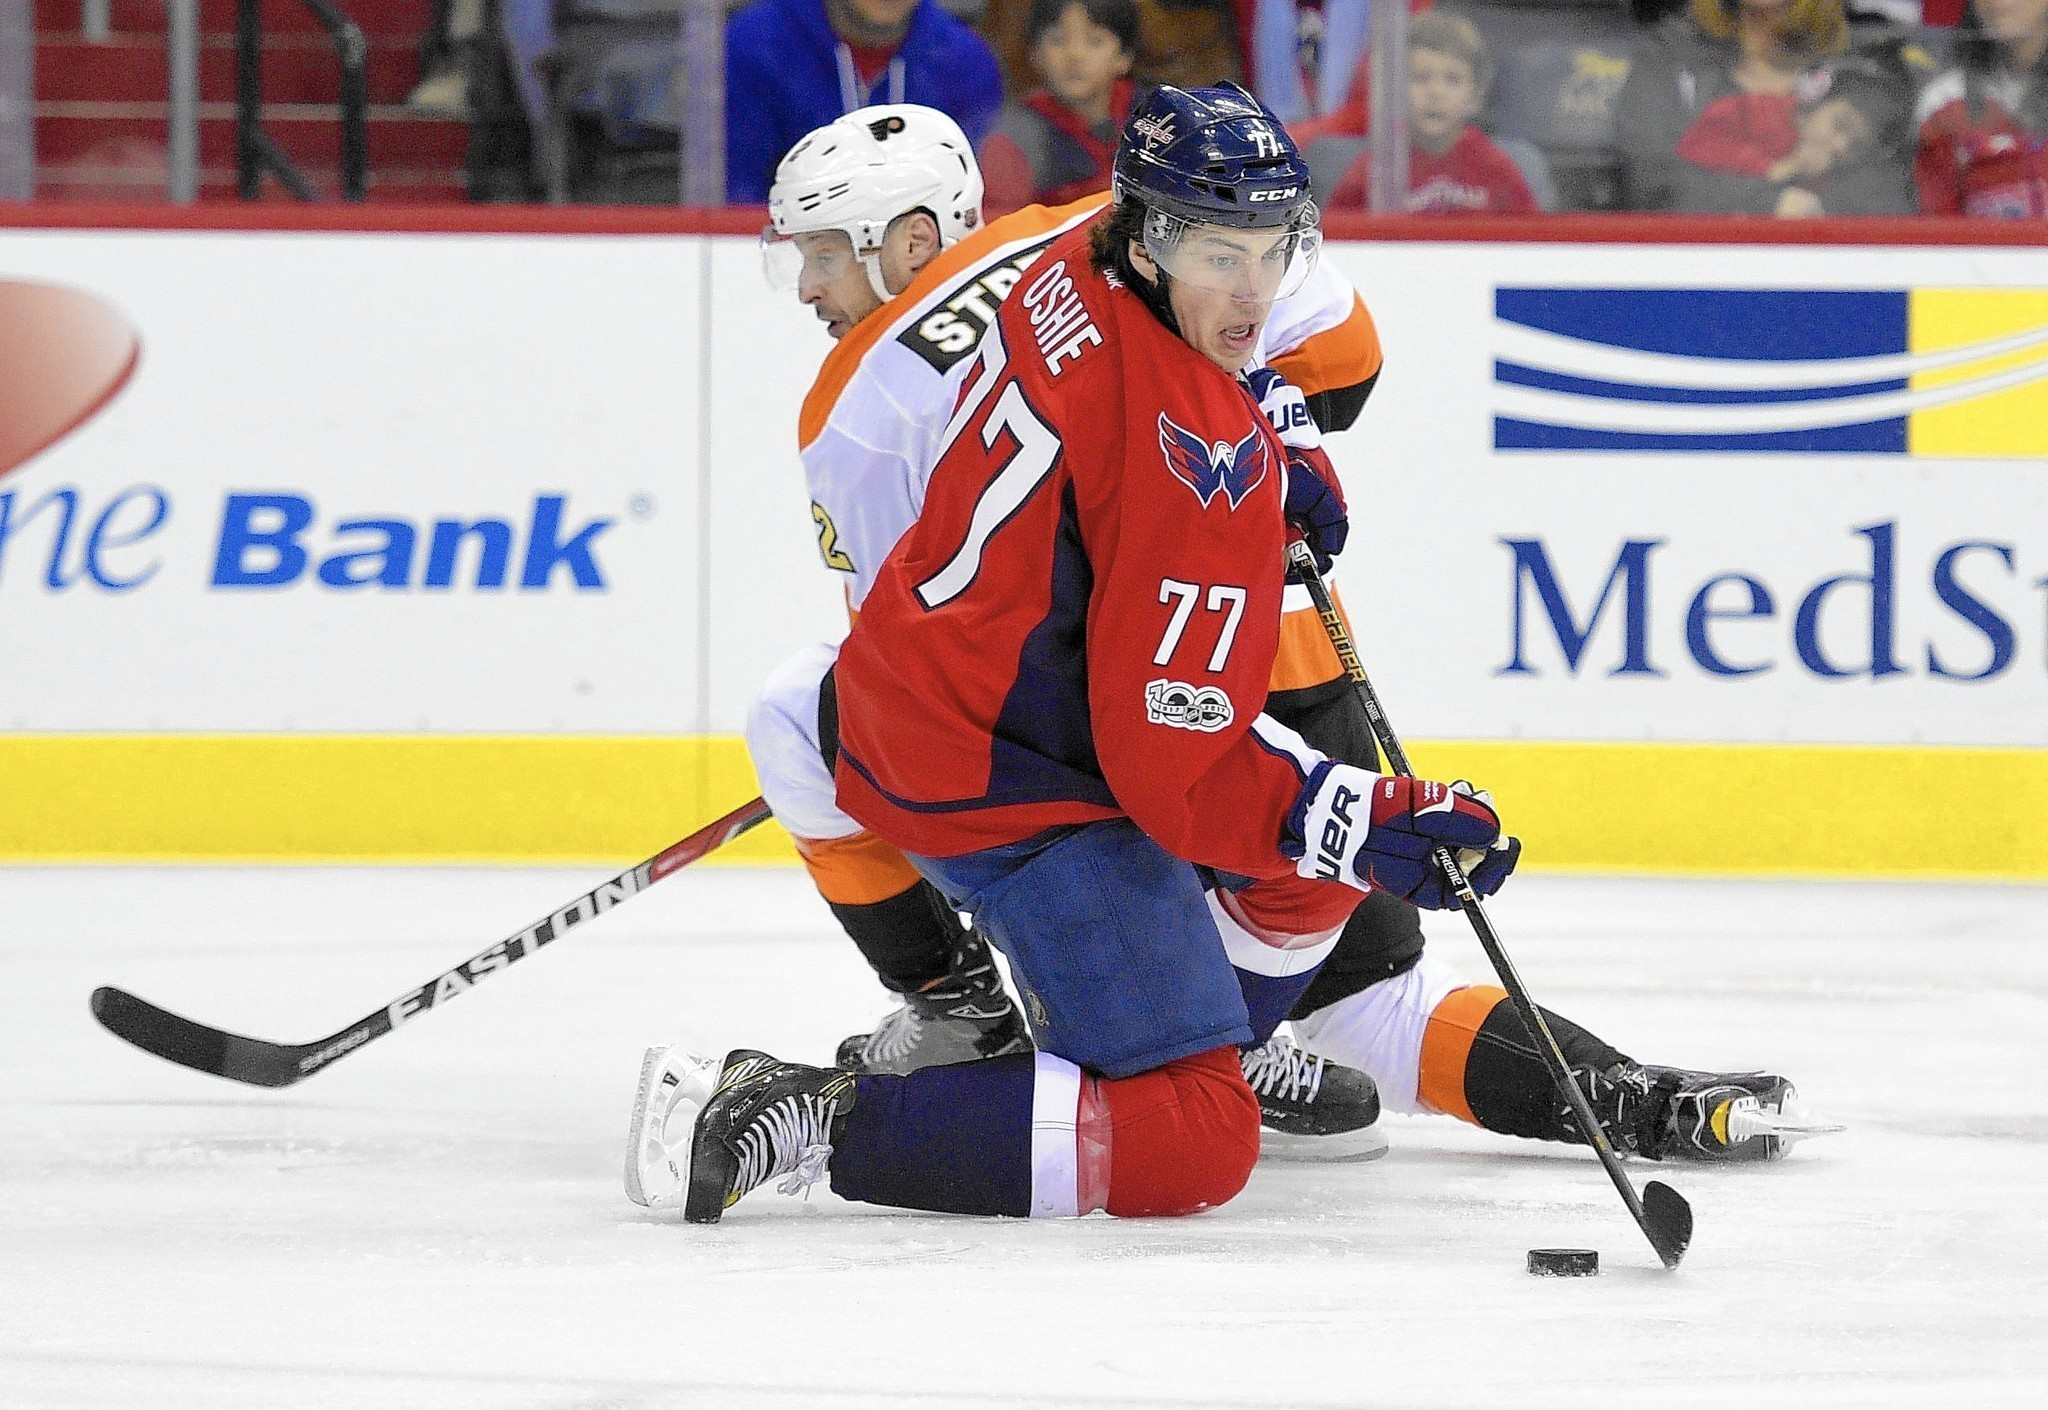 Capitals blow out Flyers to win 9th consecutive game